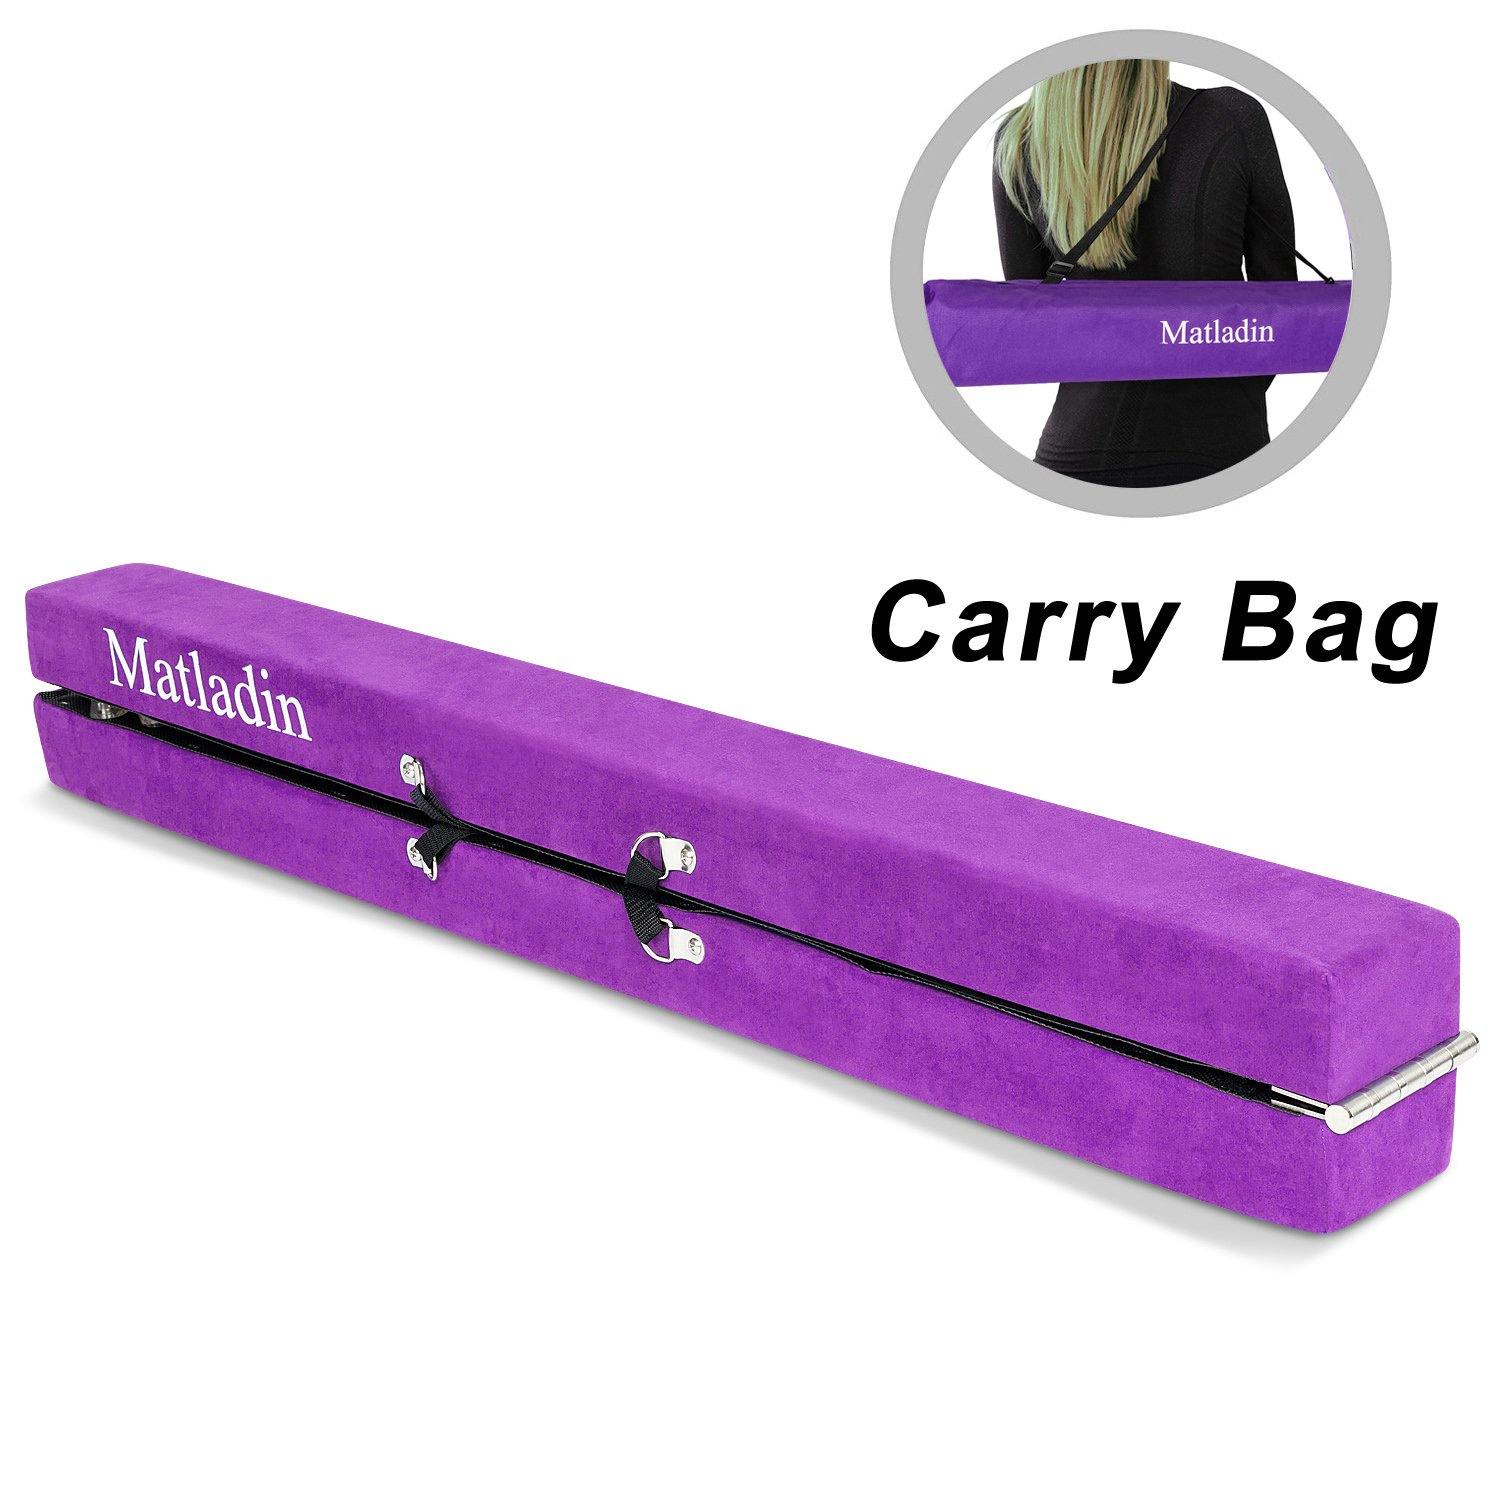 Matladin Gymnastics Balance Beam - 7 Ft Folding Wood Core Beam with Carrying Bag, for Toddlers Kids Home Practice Use | Low & Safe on Floor to Build Motor Skills, Develop Confidence & Stability,Purple